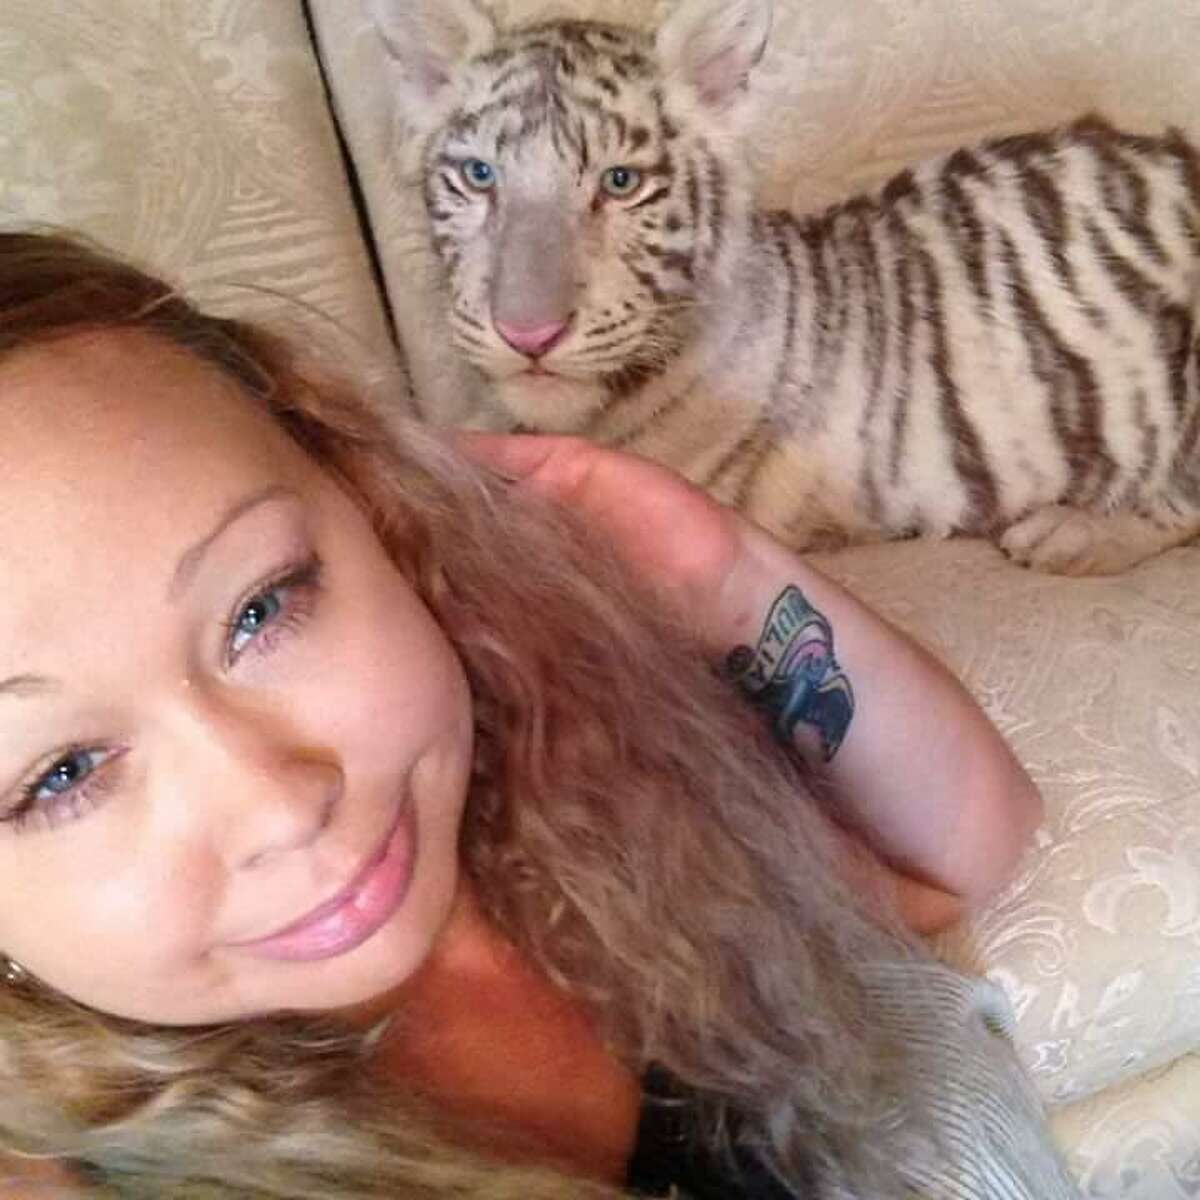 Trisha Meyer poses for a selfie with a white tiger. Meyer has been accused with child endangerment for allegedly letting her animals run free in the house with her daughter.